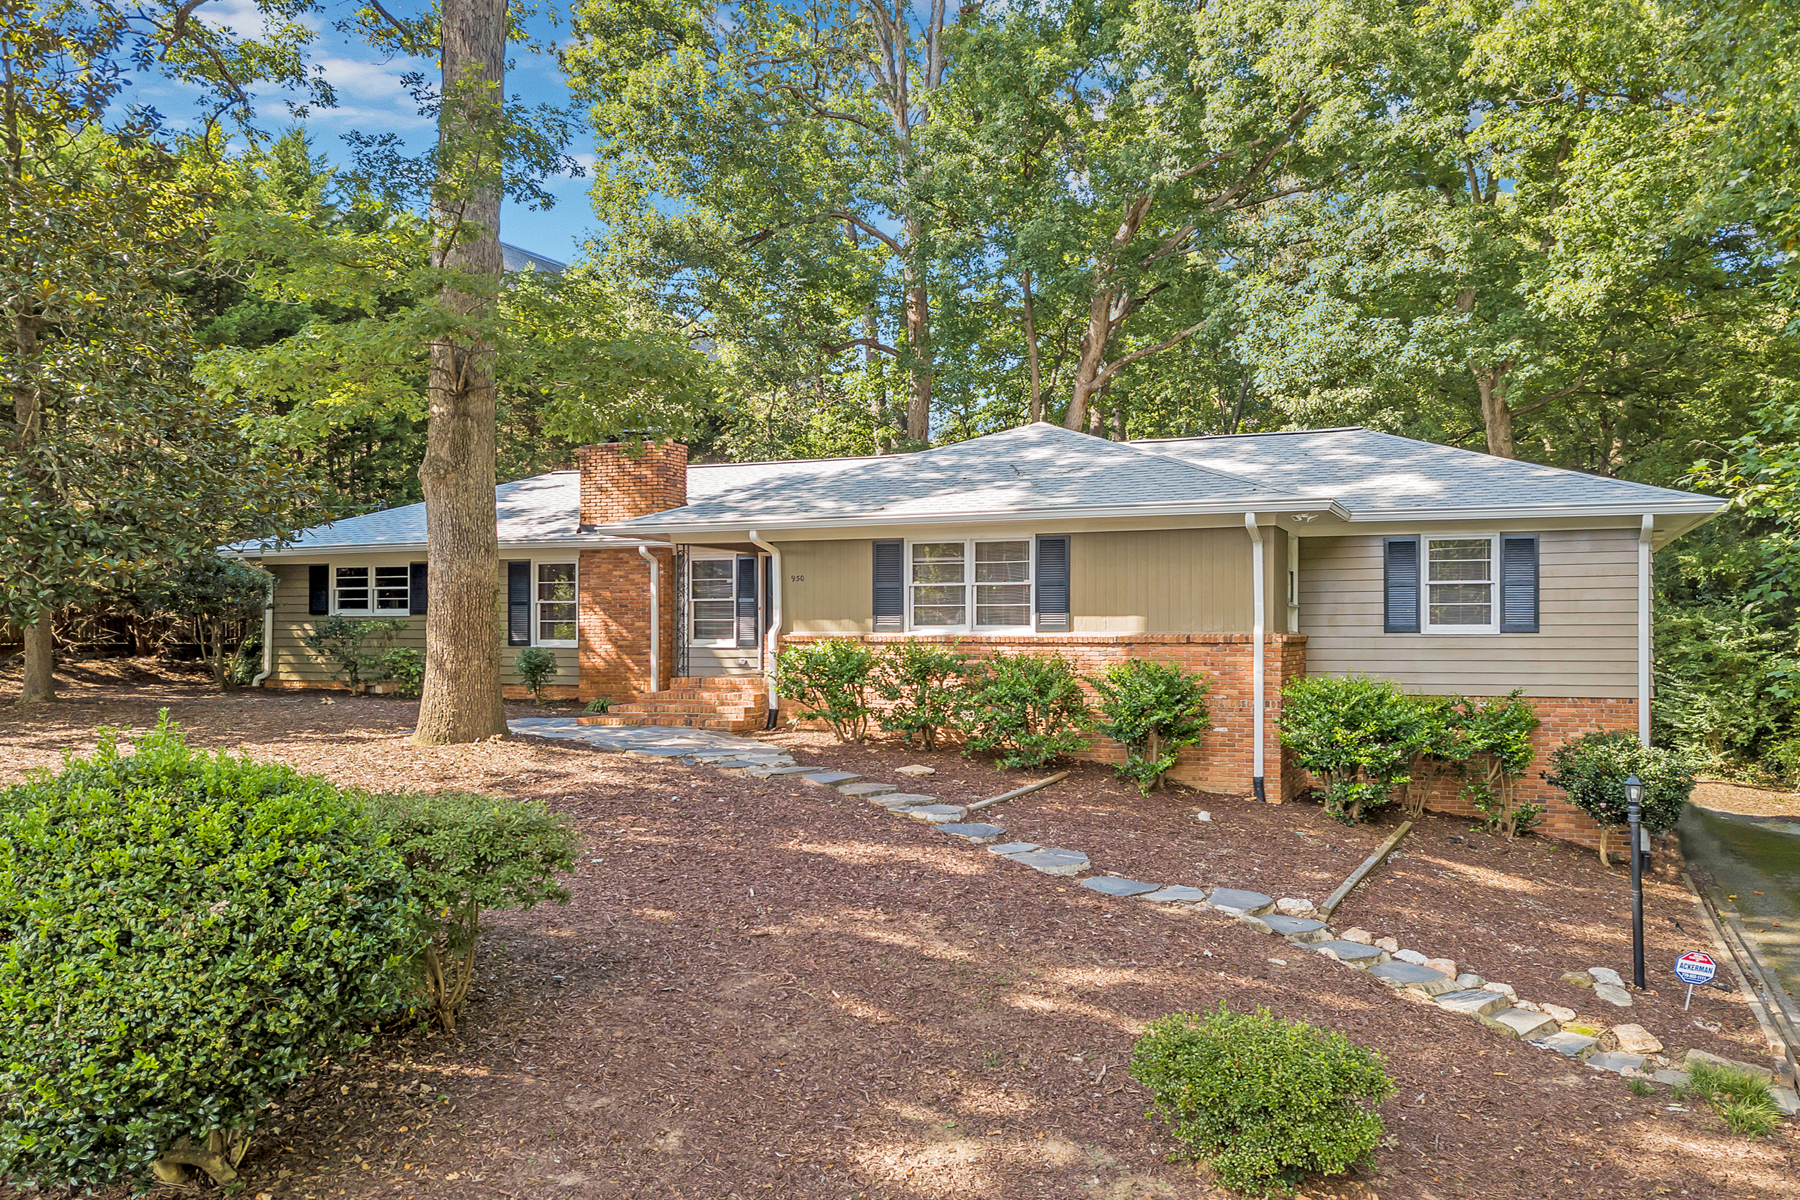 Single Family Home for Sale at Nice Updated Ranch In Pine Hills 930 Ferncliff Rd Atlanta, Georgia 30324 United States